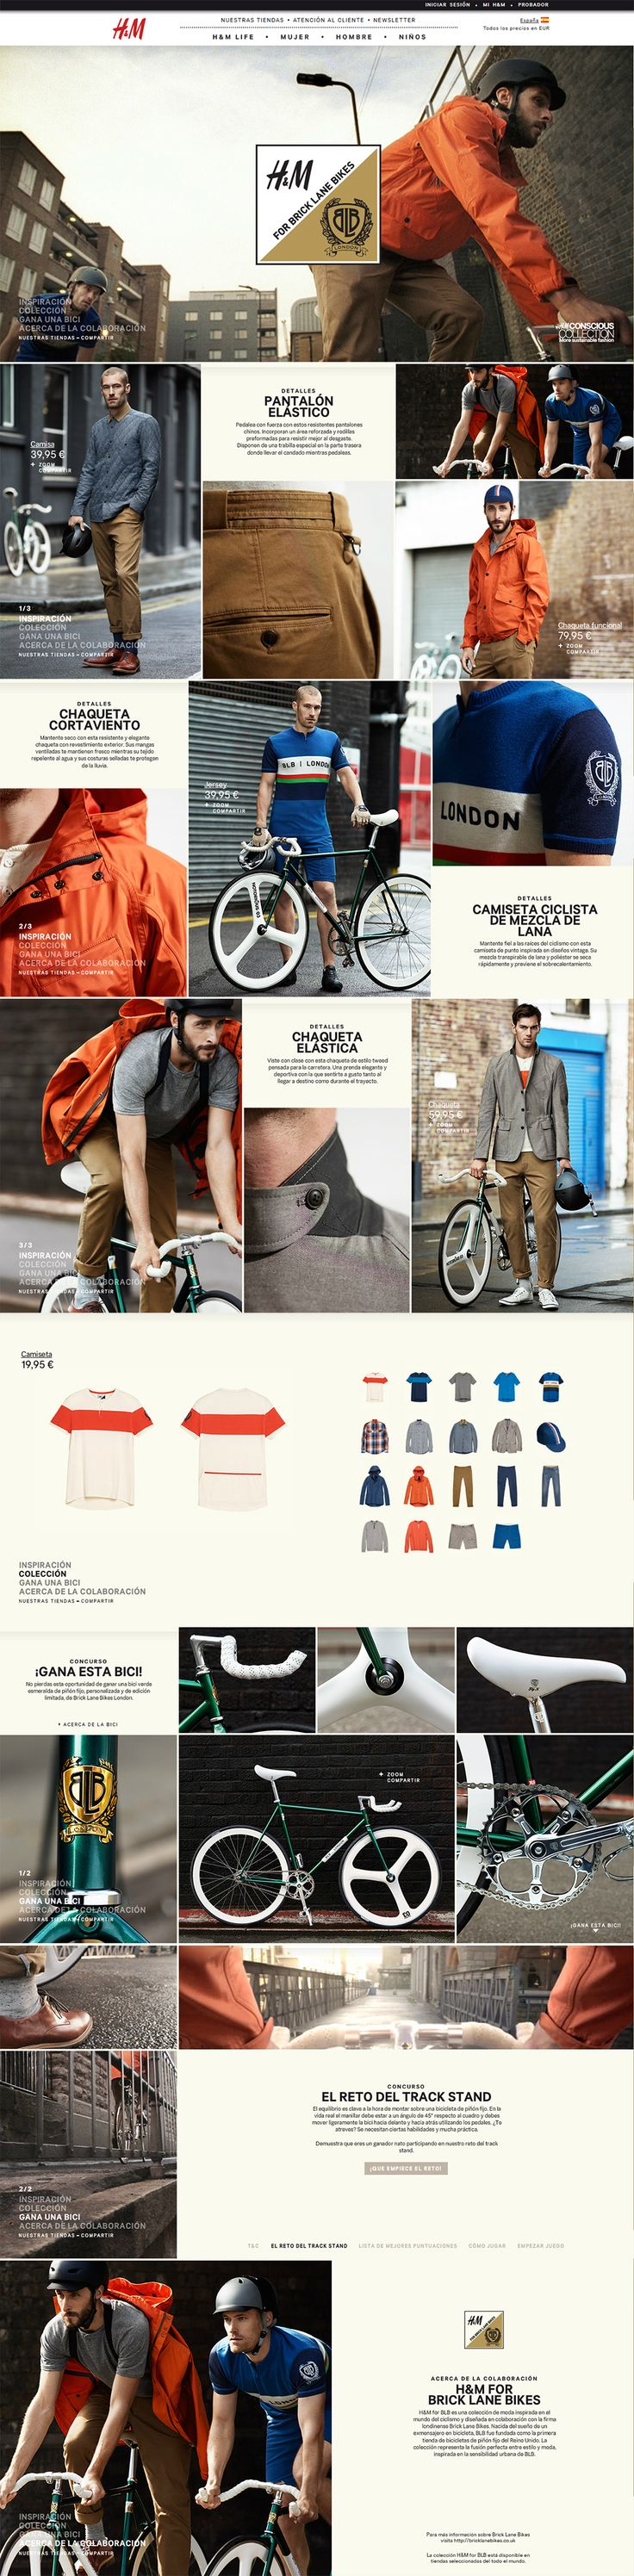 Web Graphic design. UI layout. Fashion E_Commerce